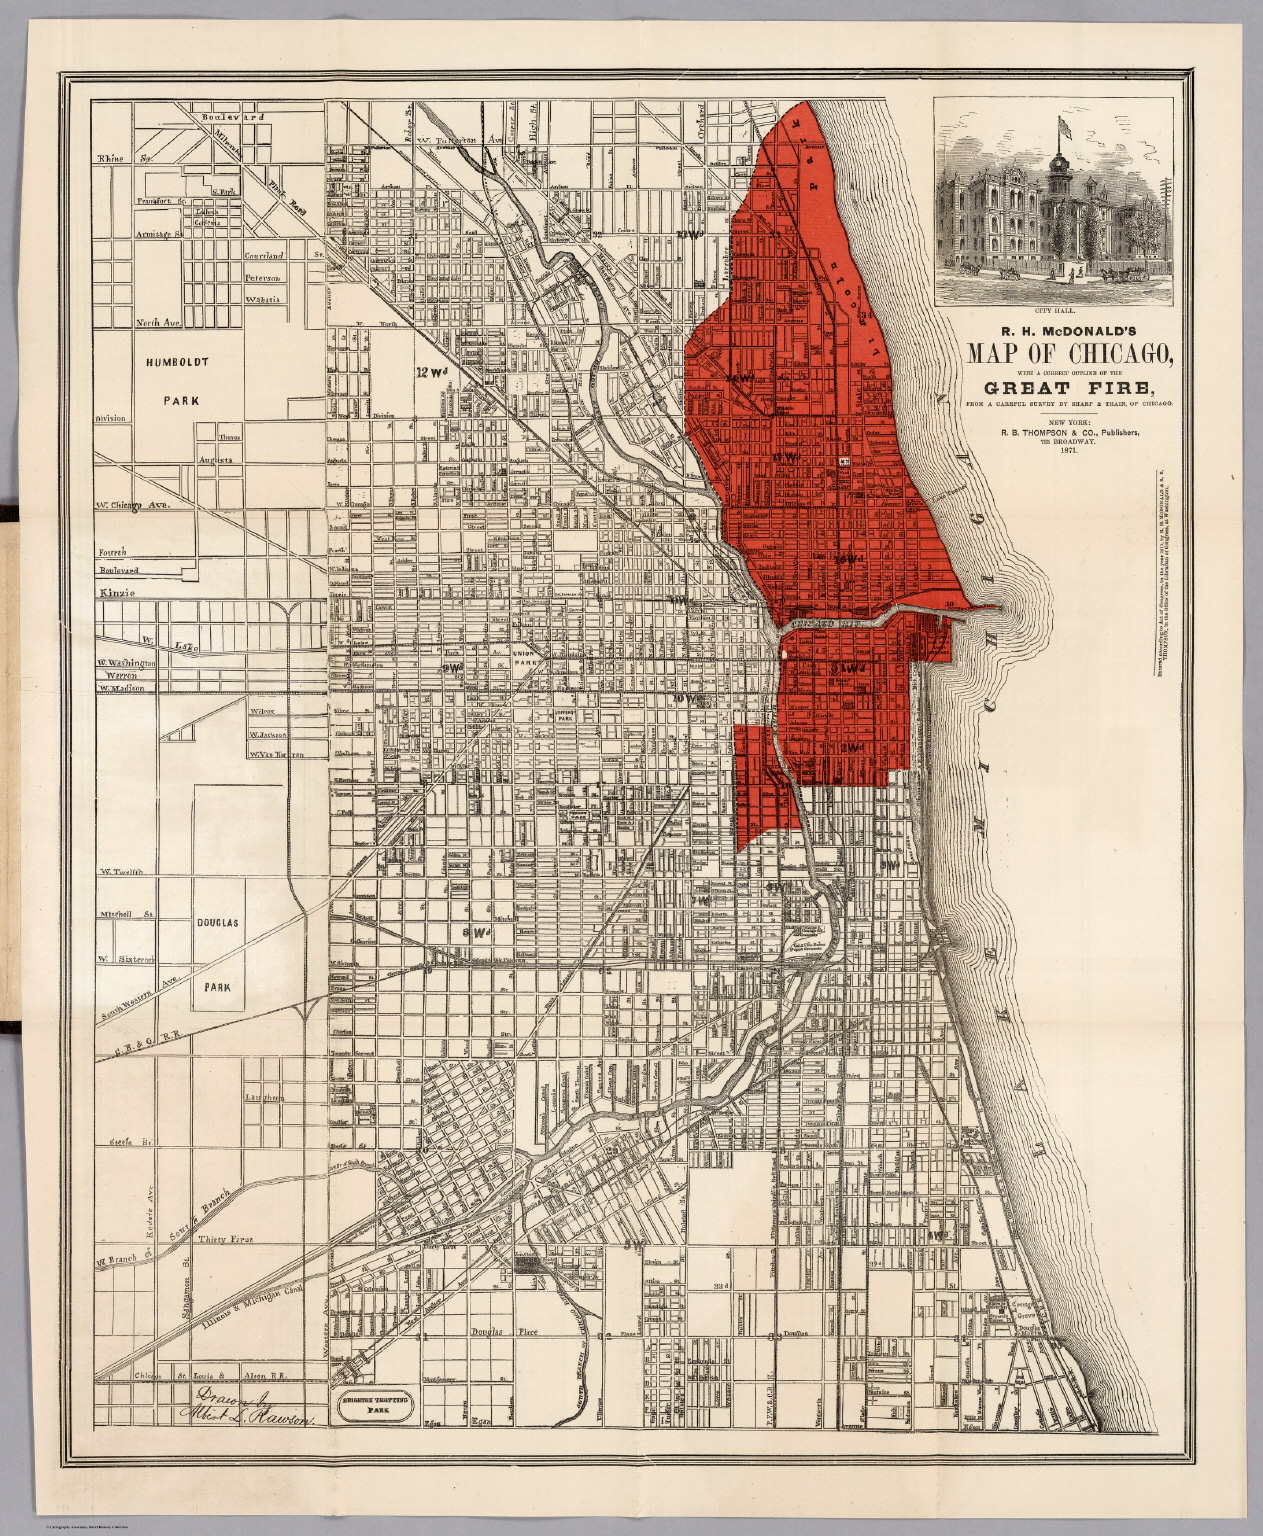 Great Chicago Fire 1871 Chicago t Chicago Fire and